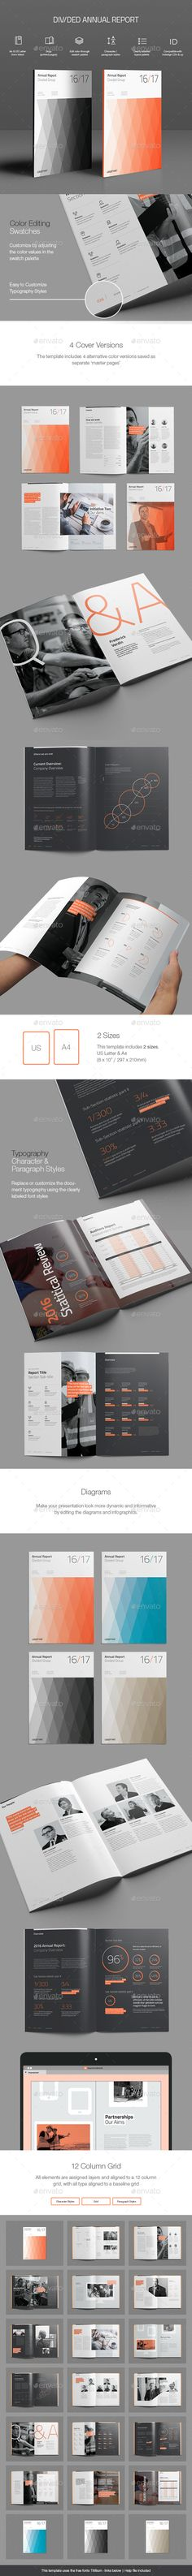 RWDesignStudio: Divided Annual Report Template - Informational Brochures http://bit.ly/1OOheu0